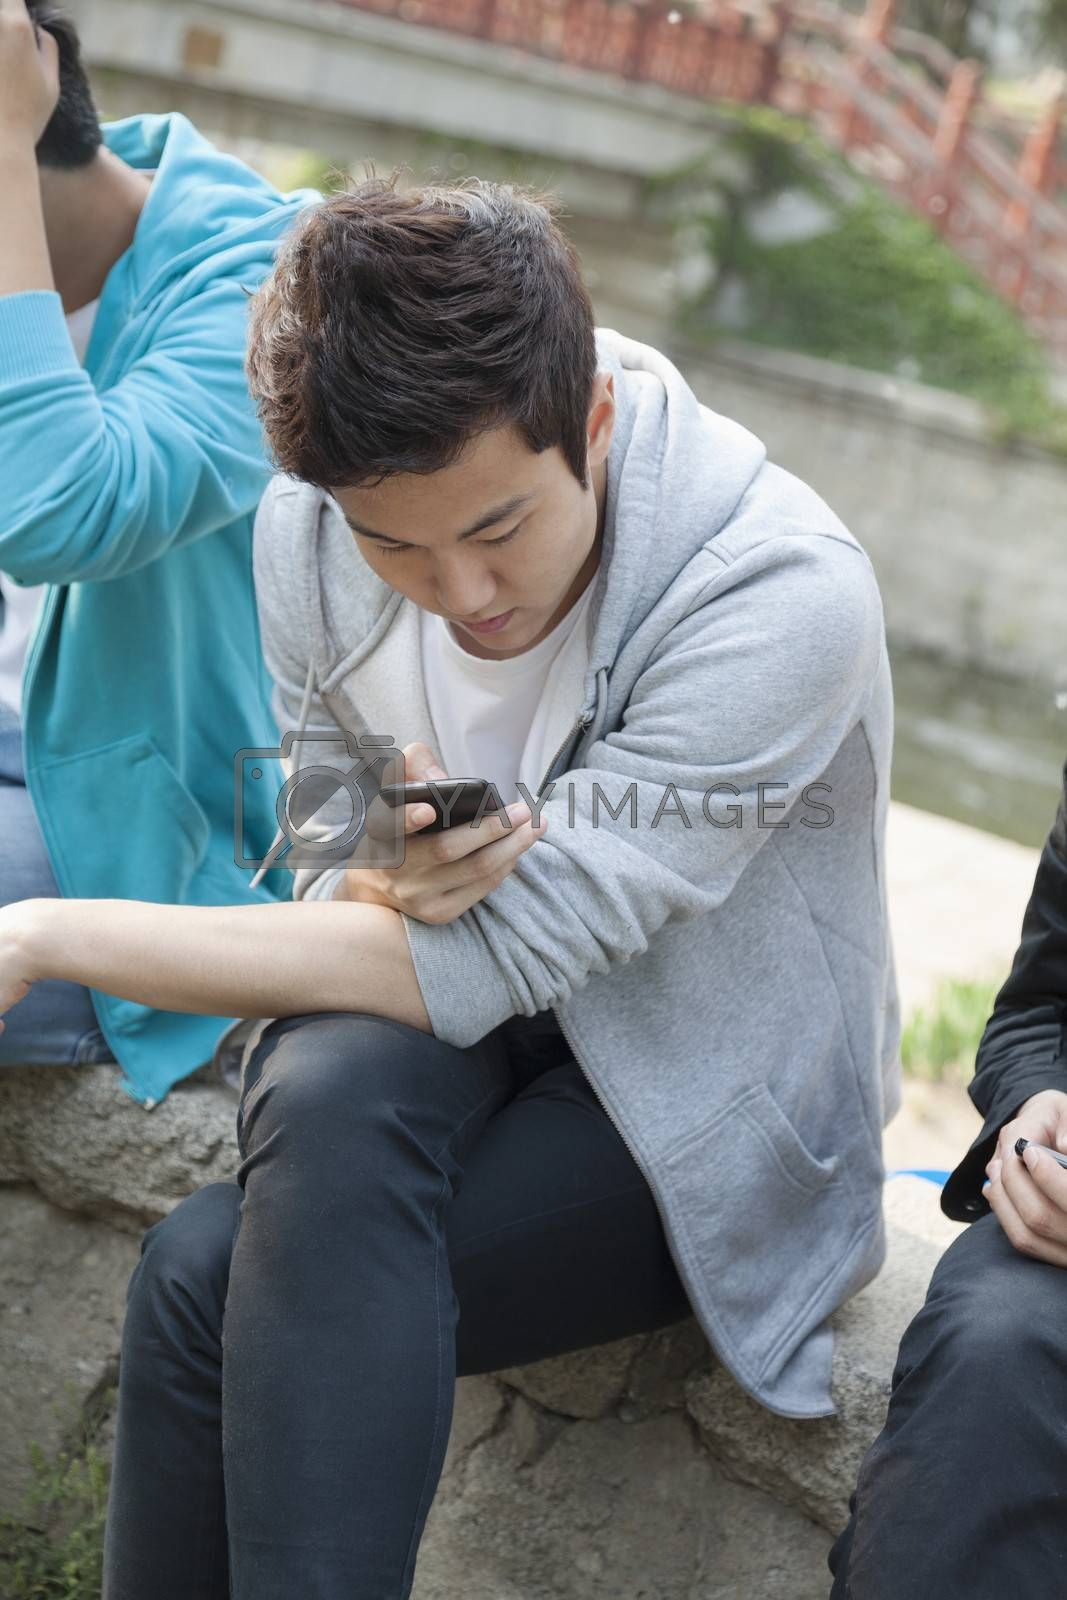 Young man in a gray hooded sweatshirt looking down at his phone and texting outdoors by XiXinXing